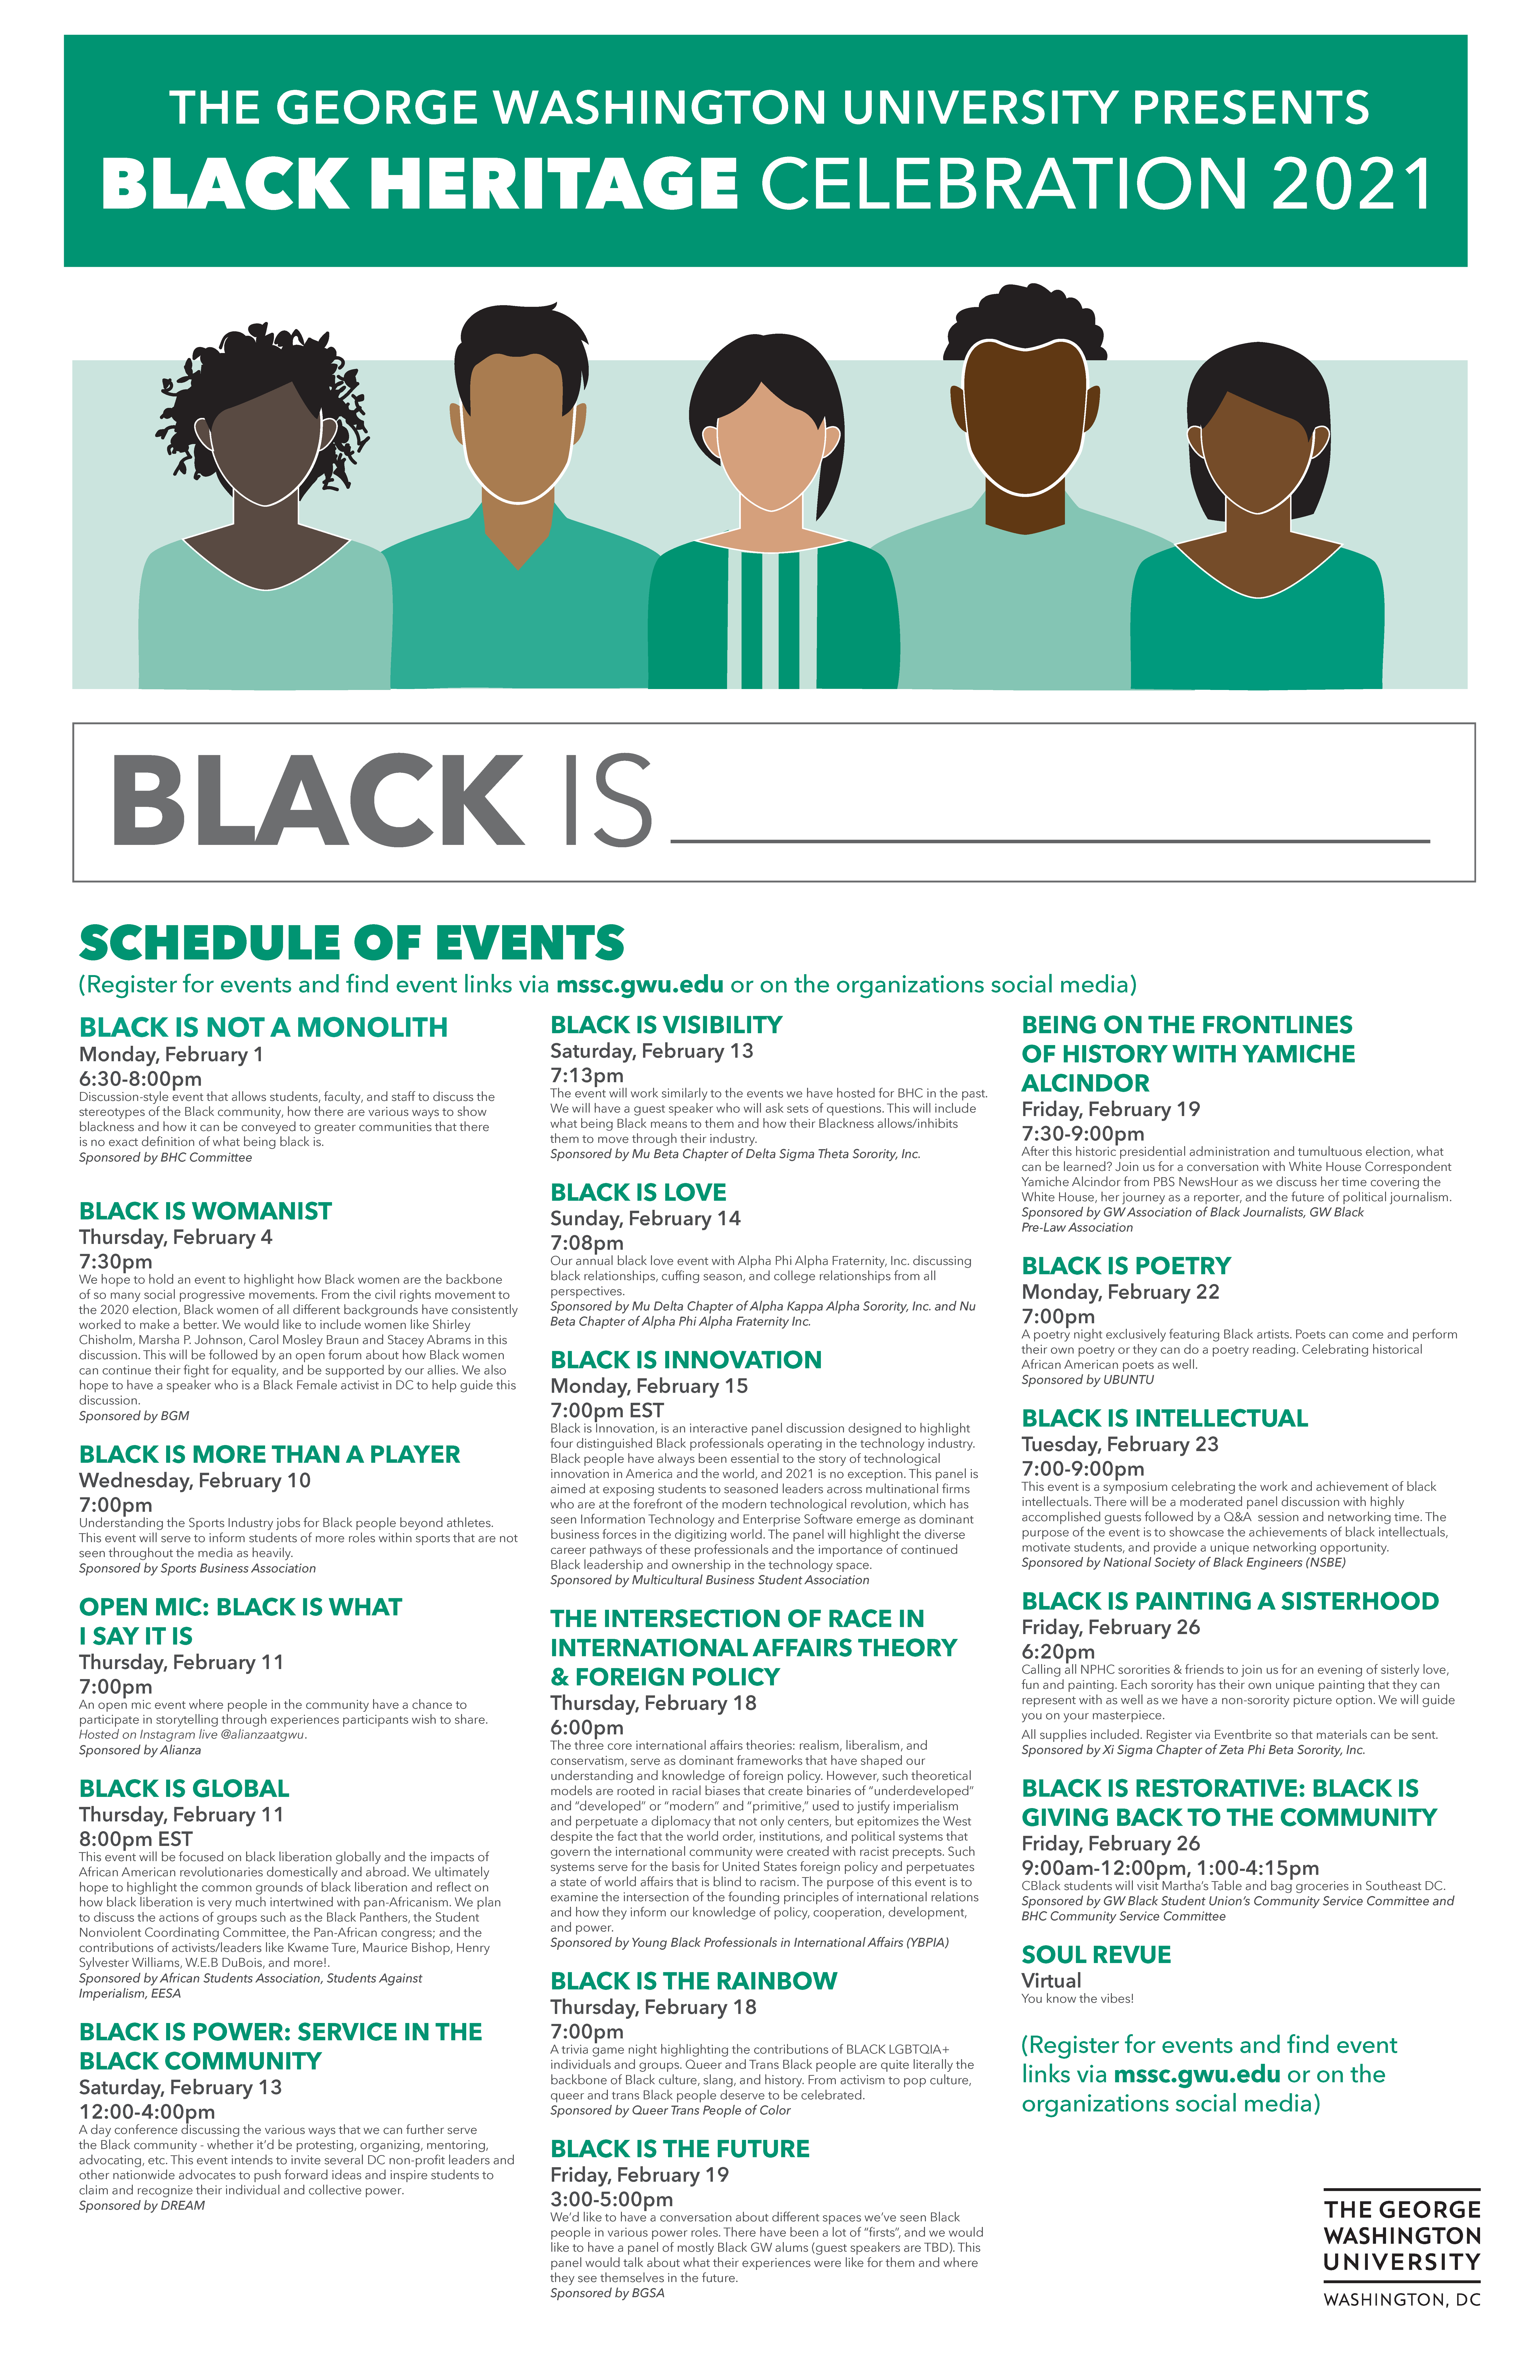 BHC 2021 Flyer. See above for full schedule in text form.